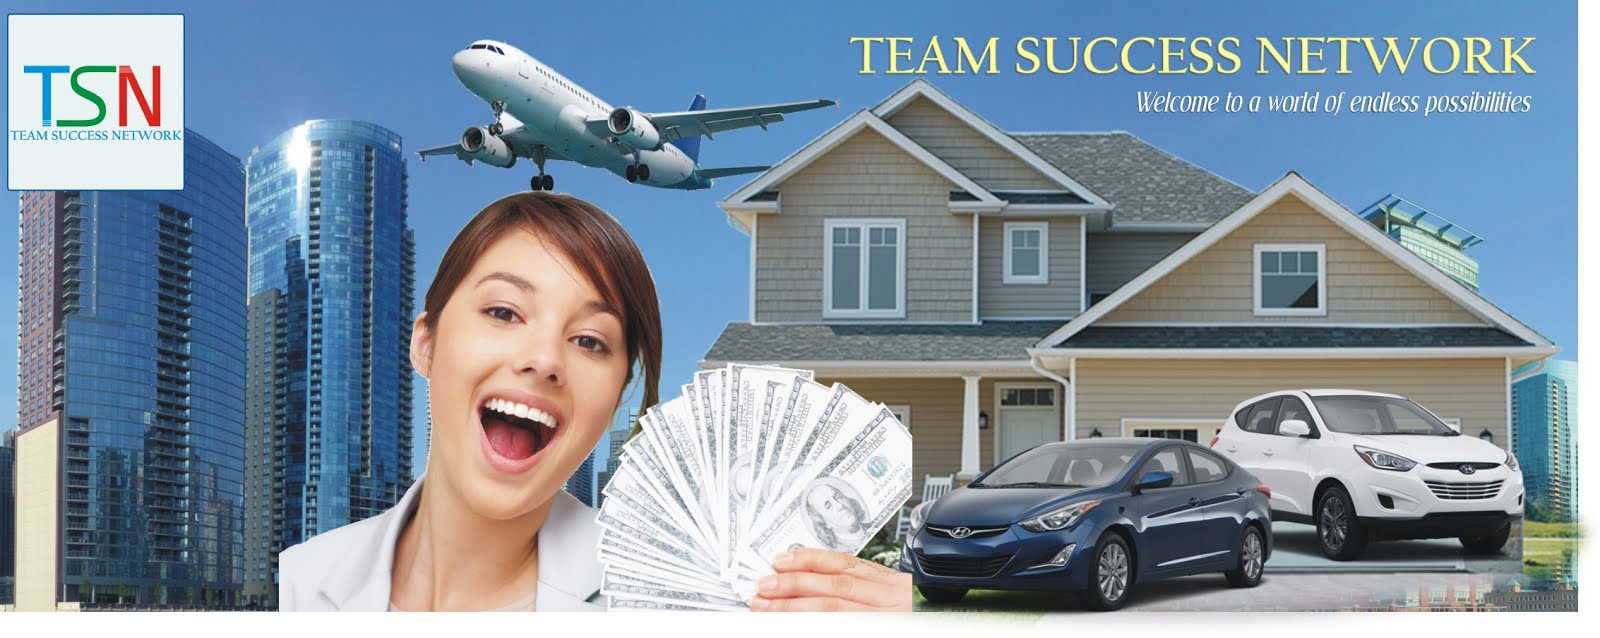 Team Success Network. About Us